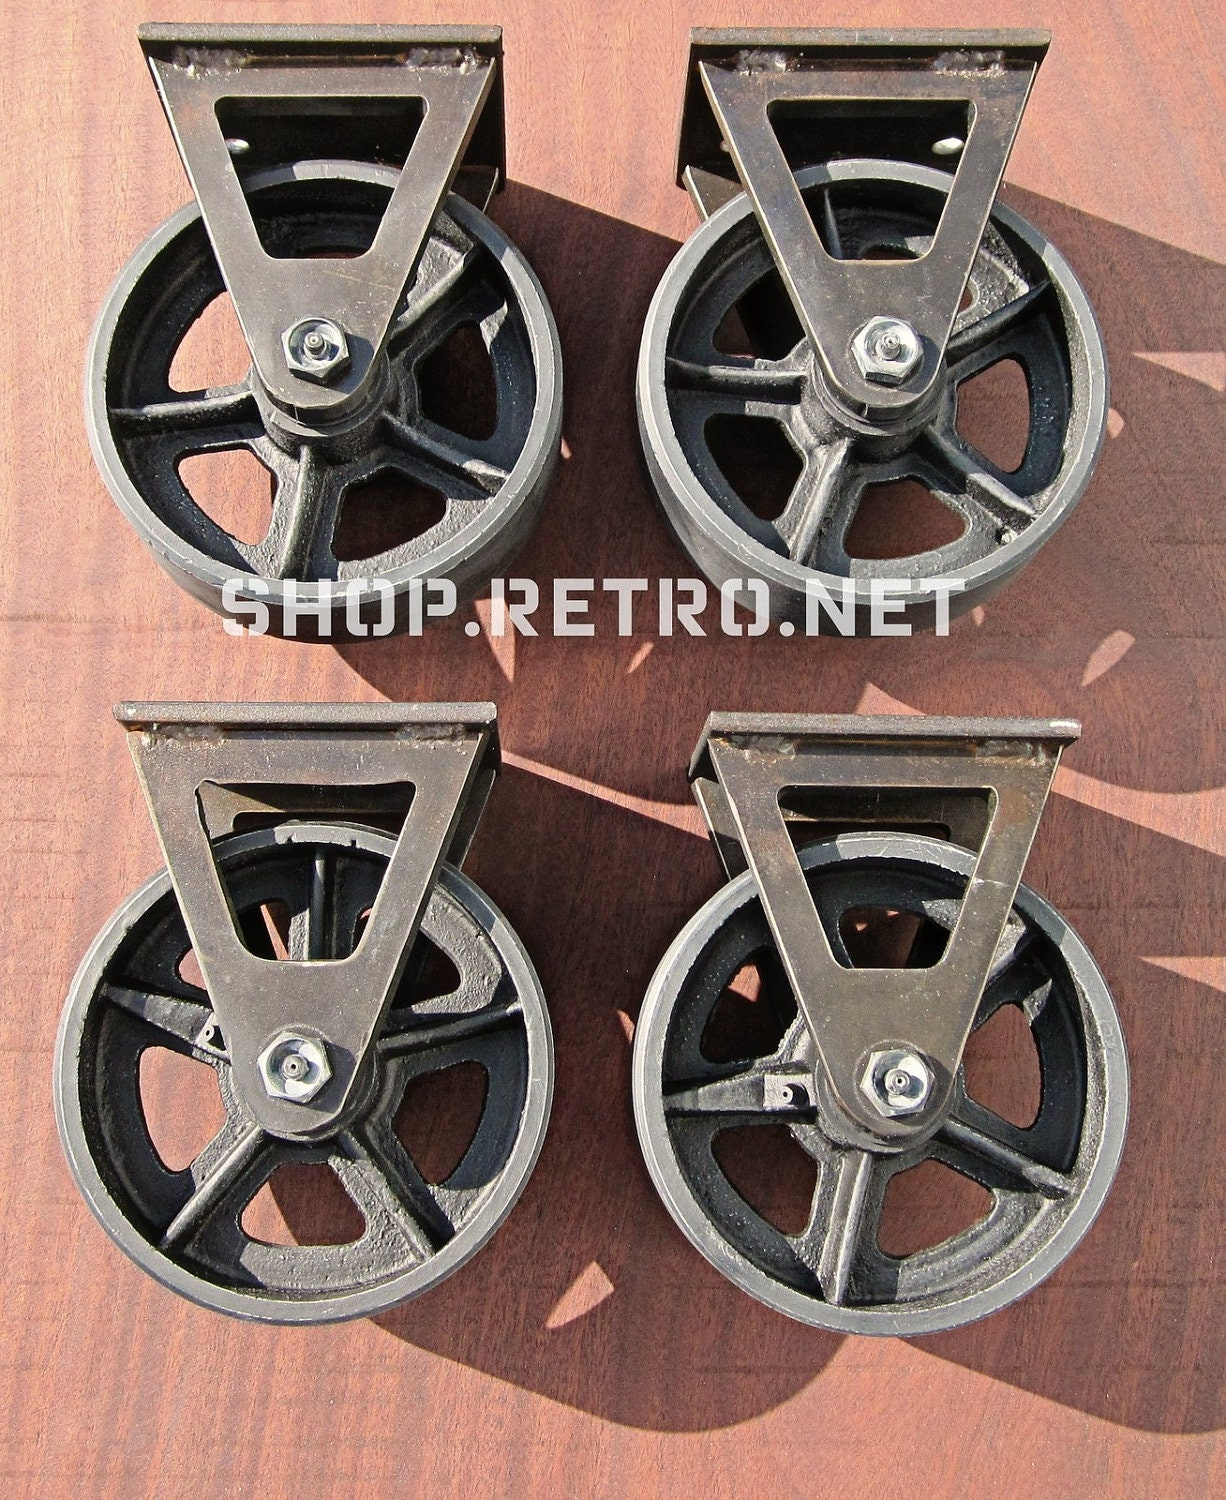 Factory caster vintage industrial furniture - 6 Vintage Factory Caster Wheel Set Antique Industrial 6fc